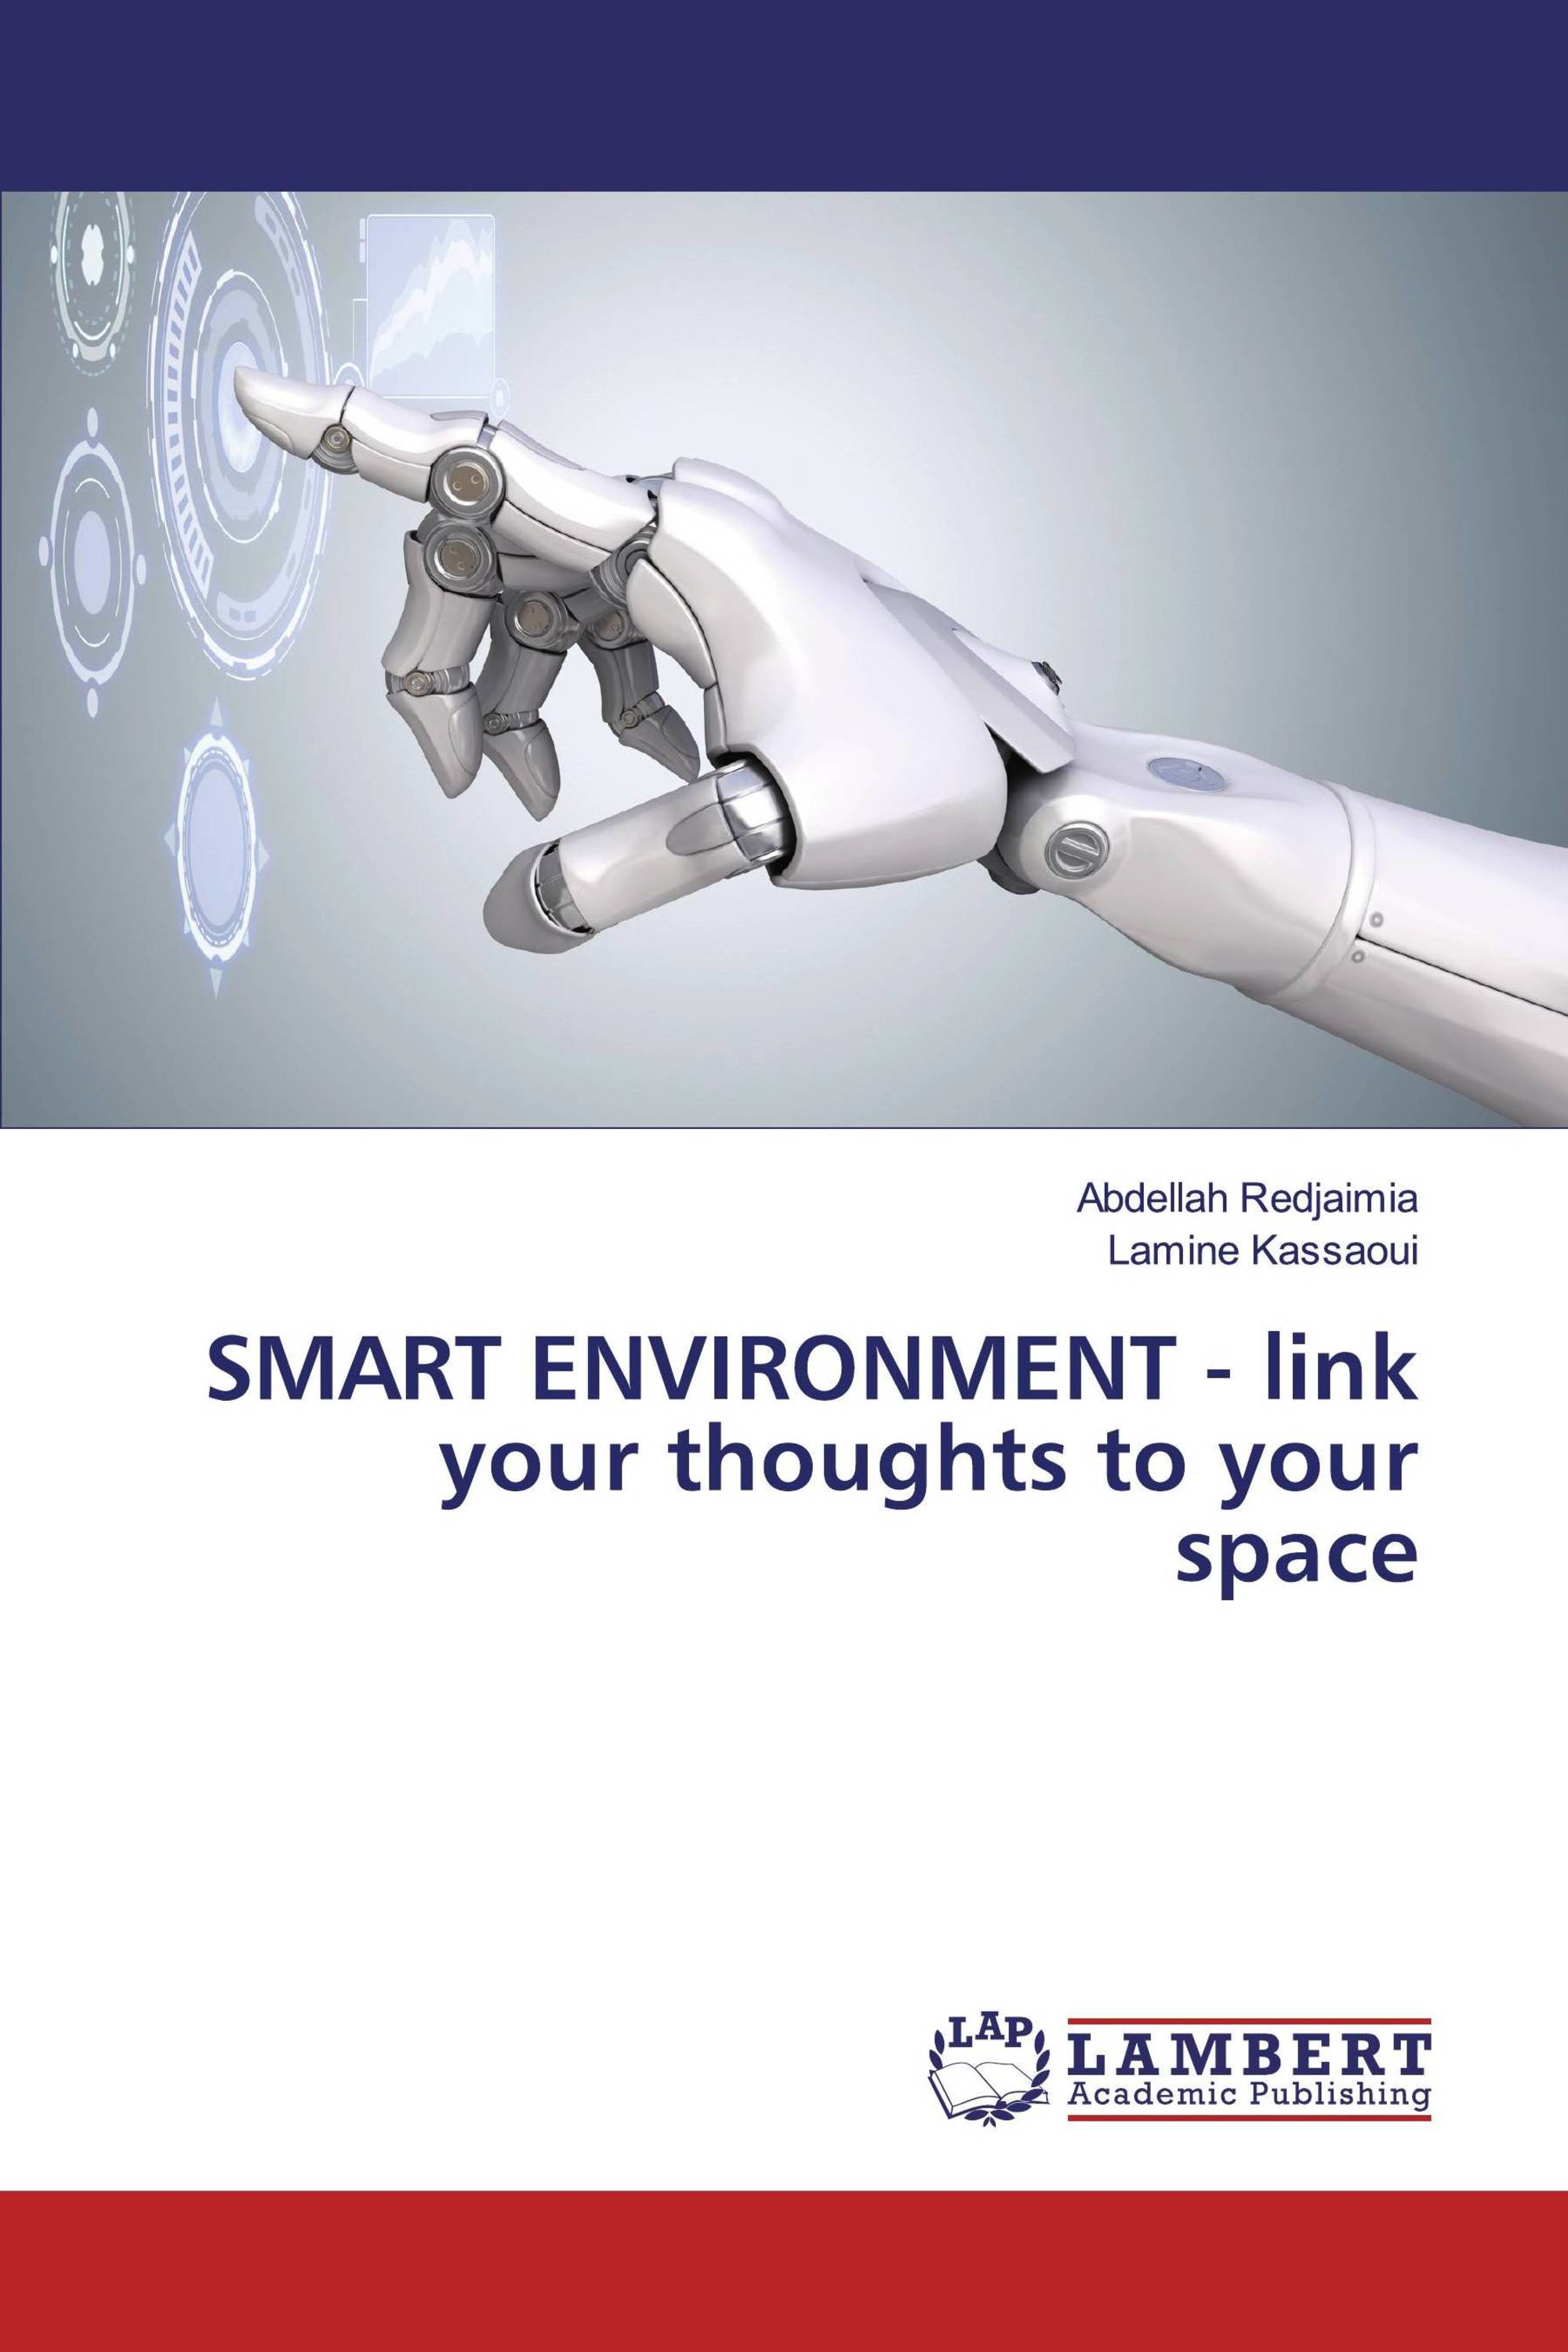 SMART ENVIRONMENT - link your thoughts to your space